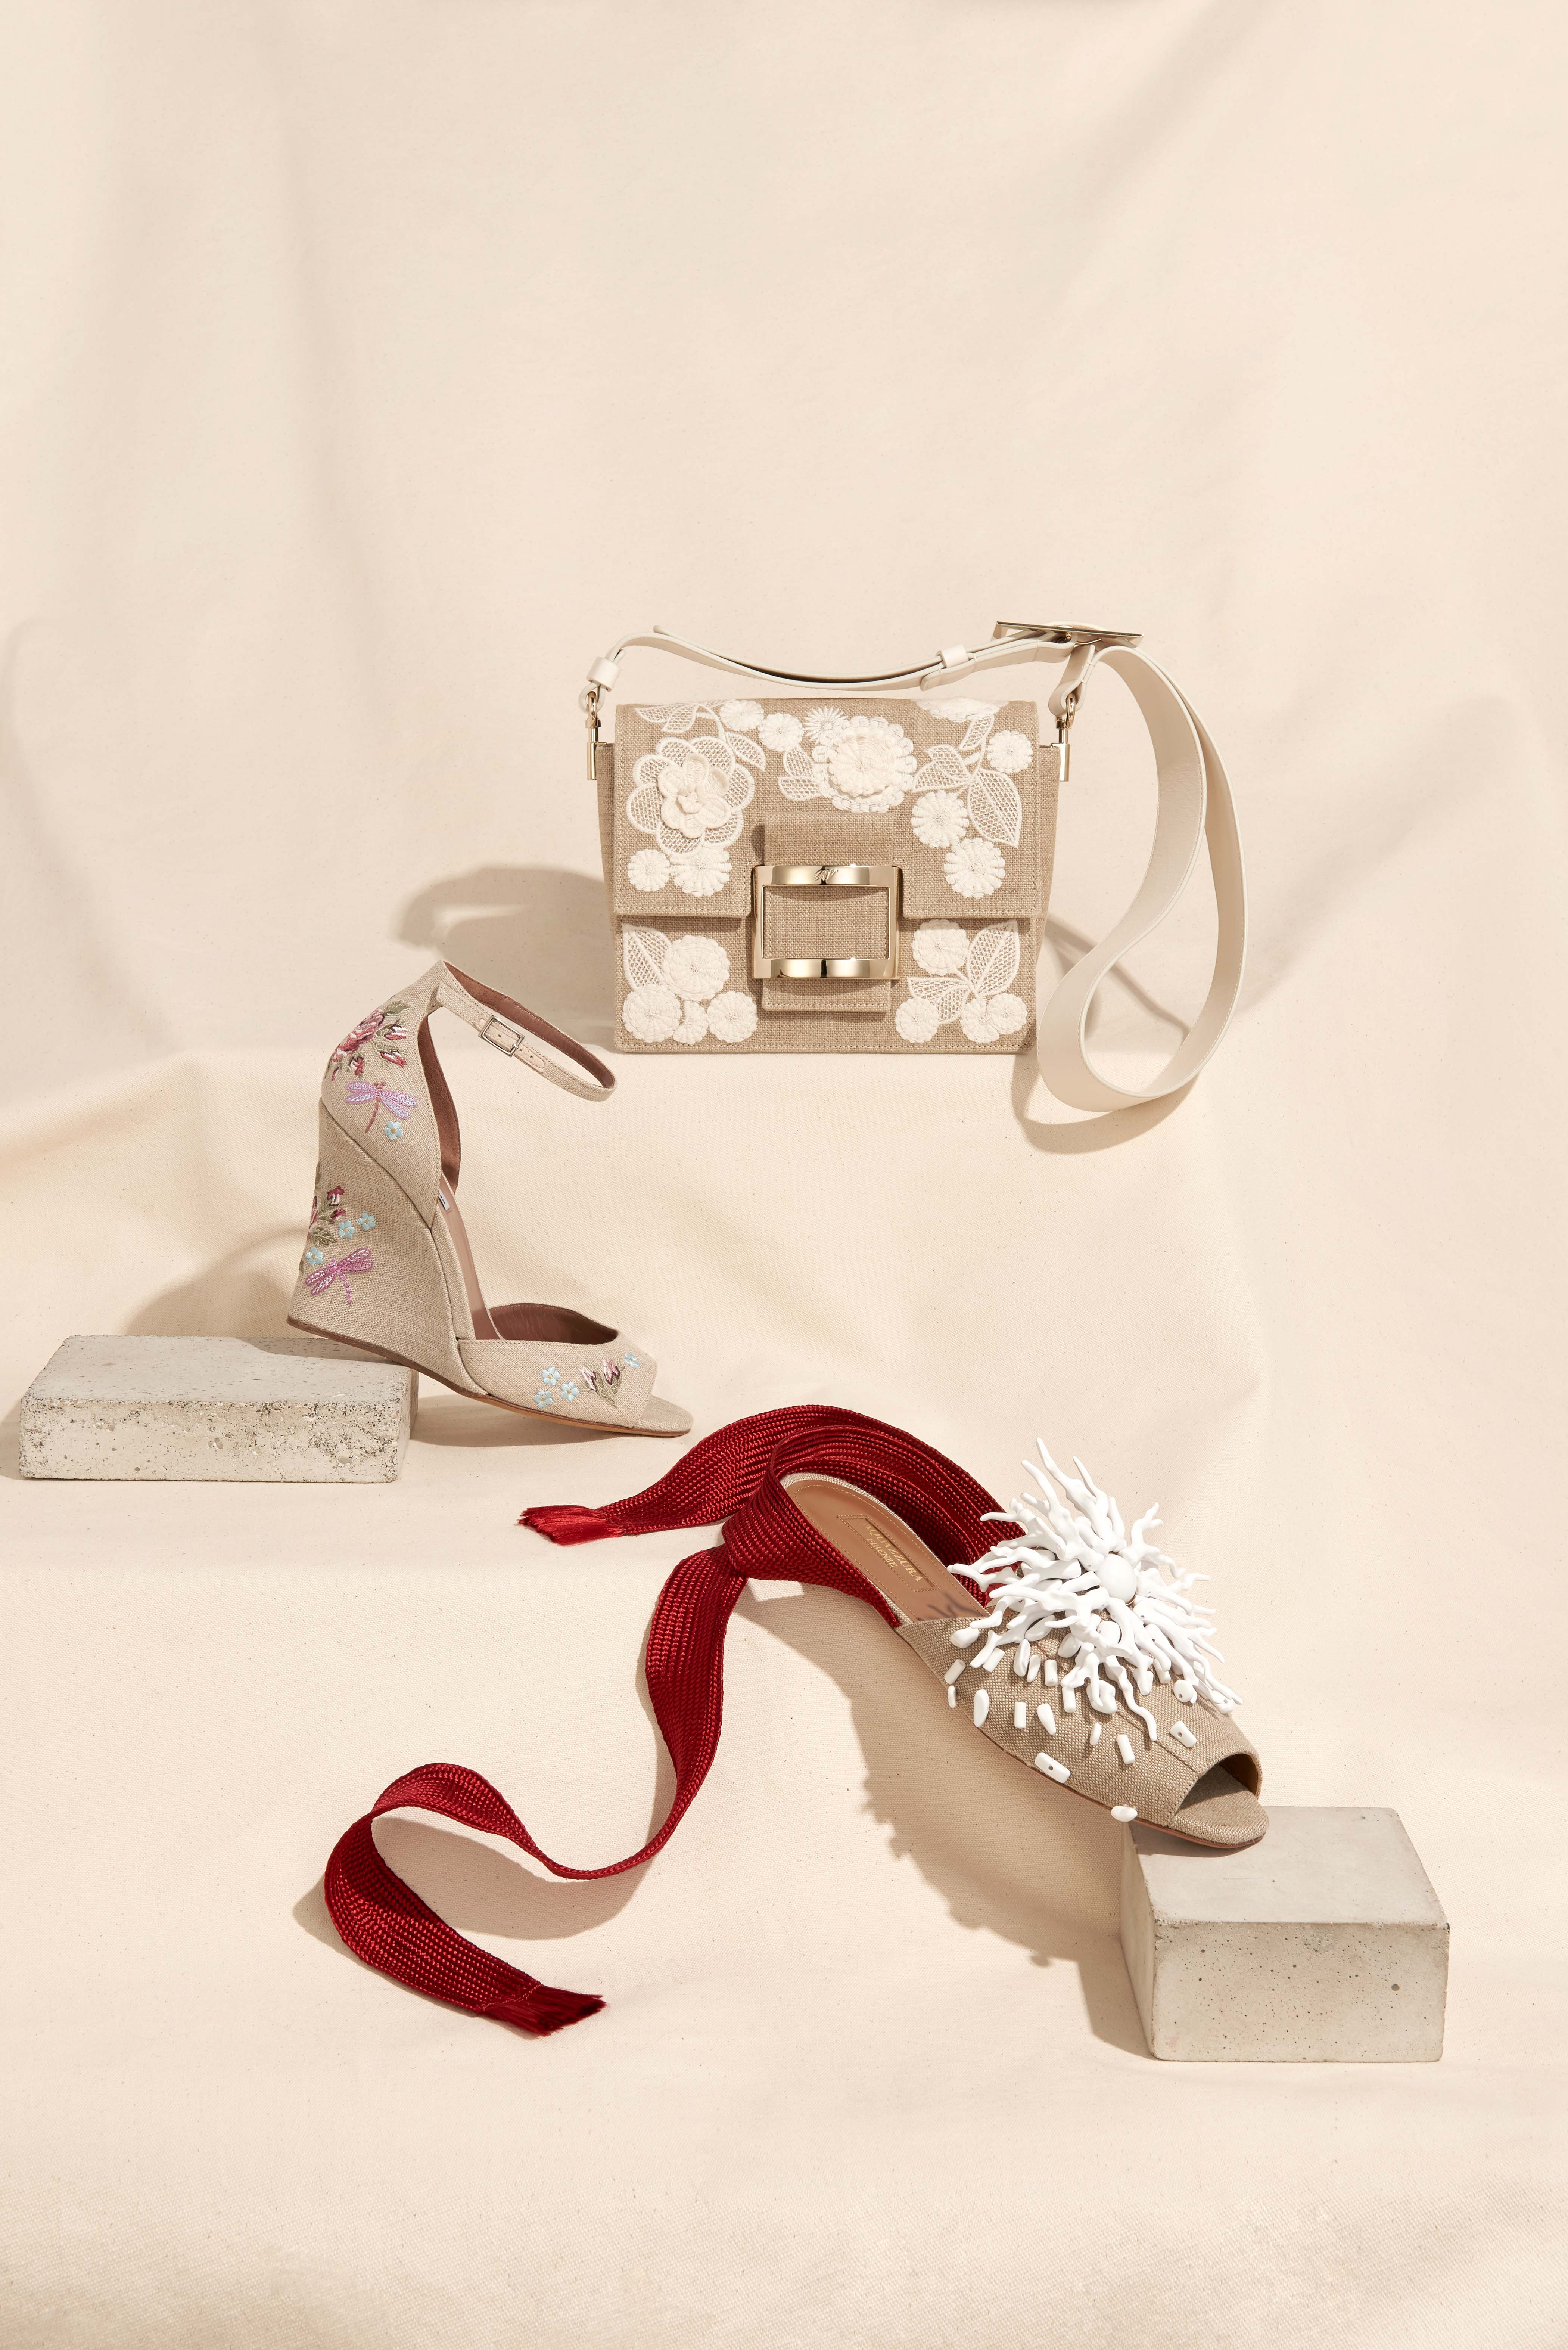 Roger Vivier (top), Tabitha Simmons (middle) and Aquazzura, which adds resin coral and bright red ribbon straps.